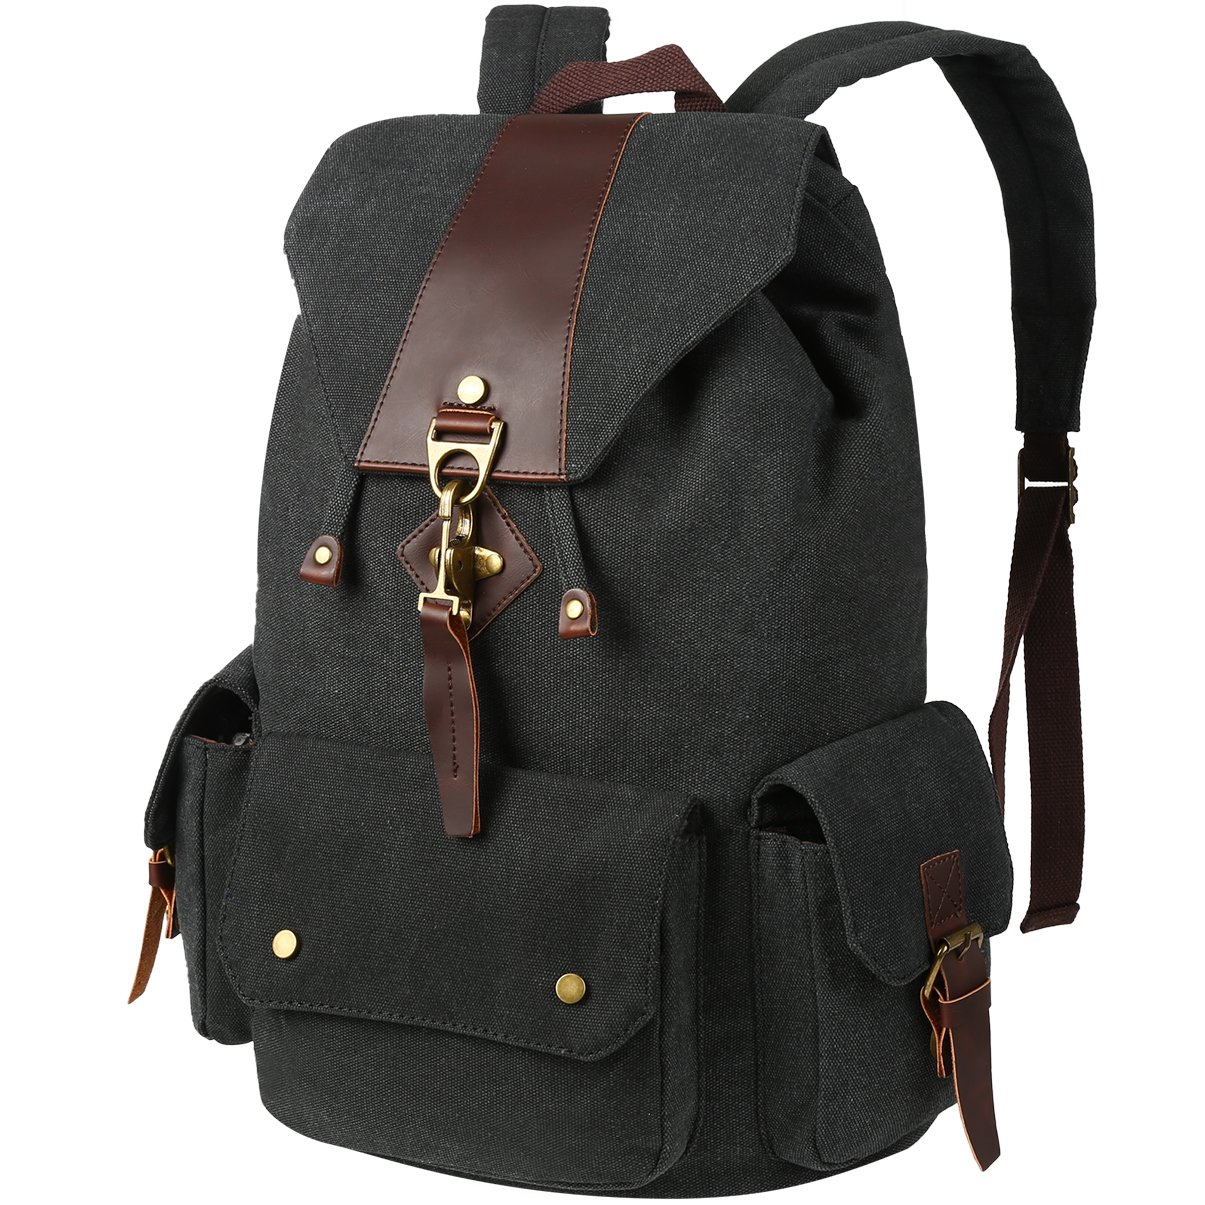 2c8804b4e0f Amazon.com   VBG VBIGER Canvas Backpack Vintage Canvas Leather Backpack  Casual Bookbag Laptop Backpacks Travel Rucksack for Men Women   Kids   Backpacks